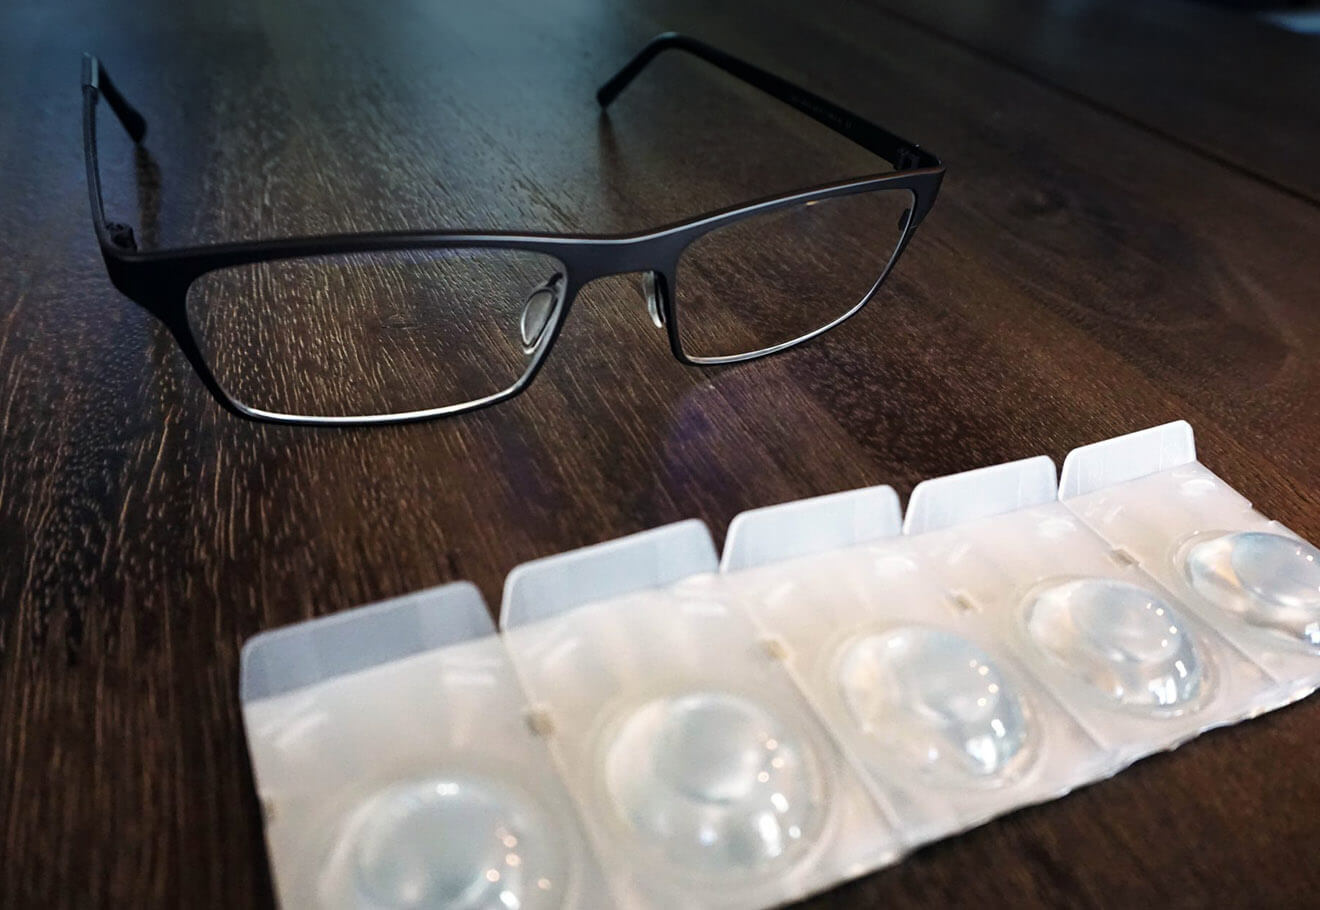 Contact lens packaging and glasses